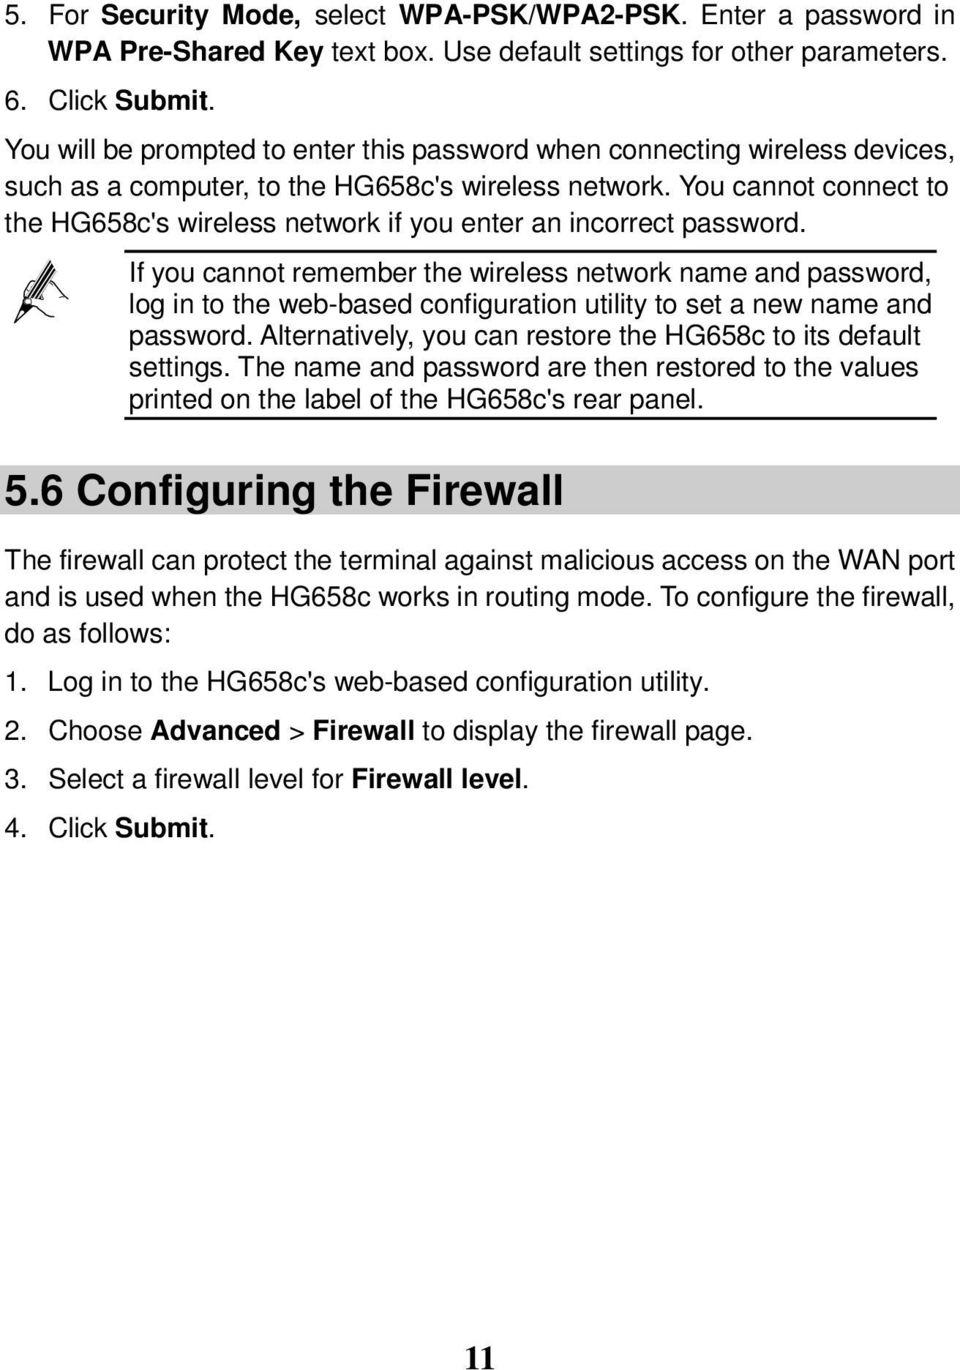 You cannot connect to the HG658c's wireless network if you enter an incorrect password.